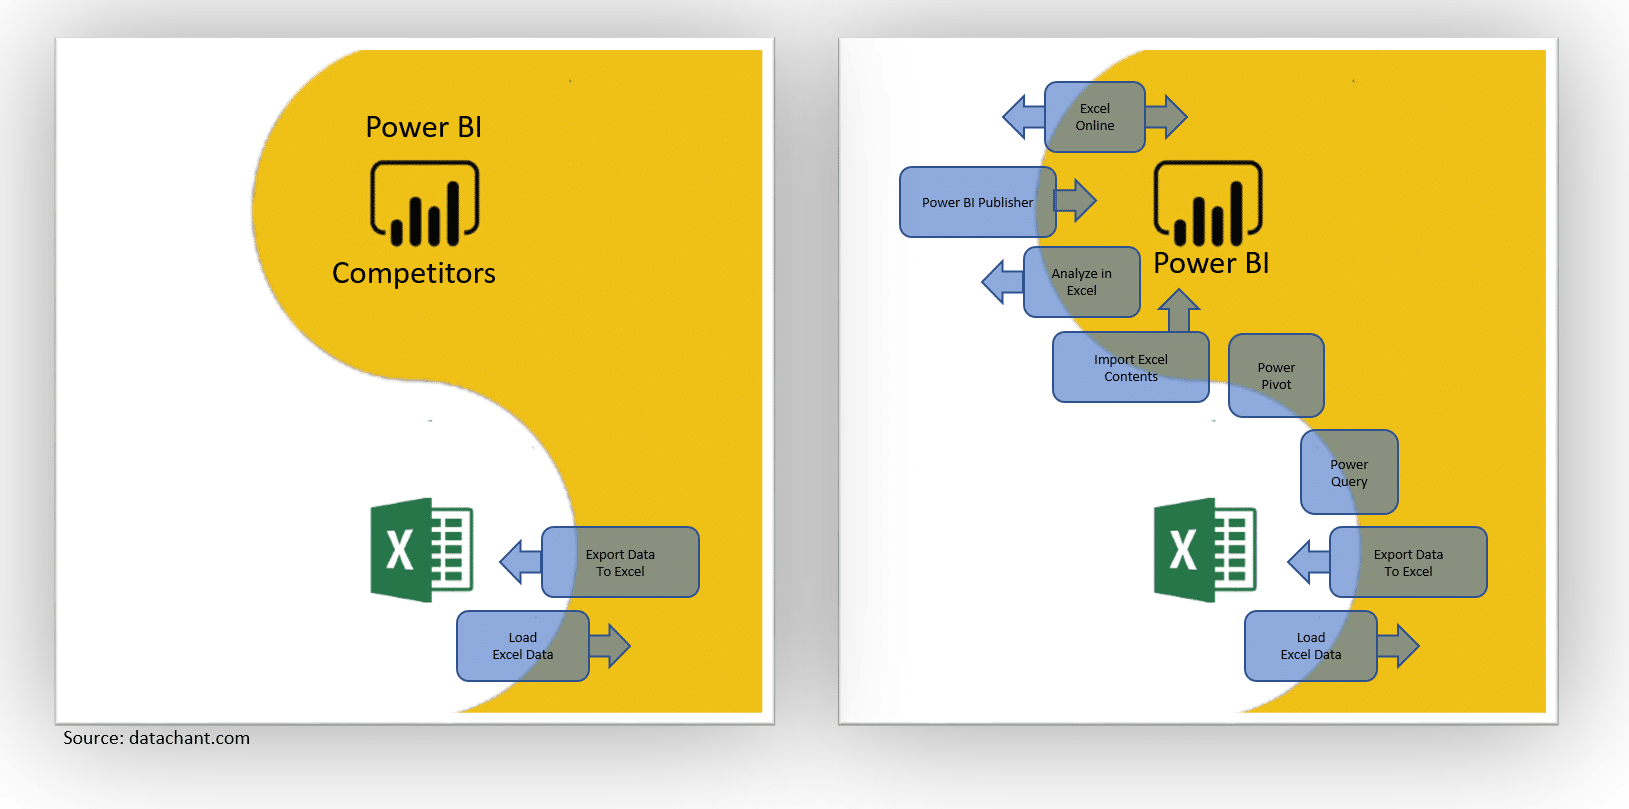 Power BI and Excel - Better Together